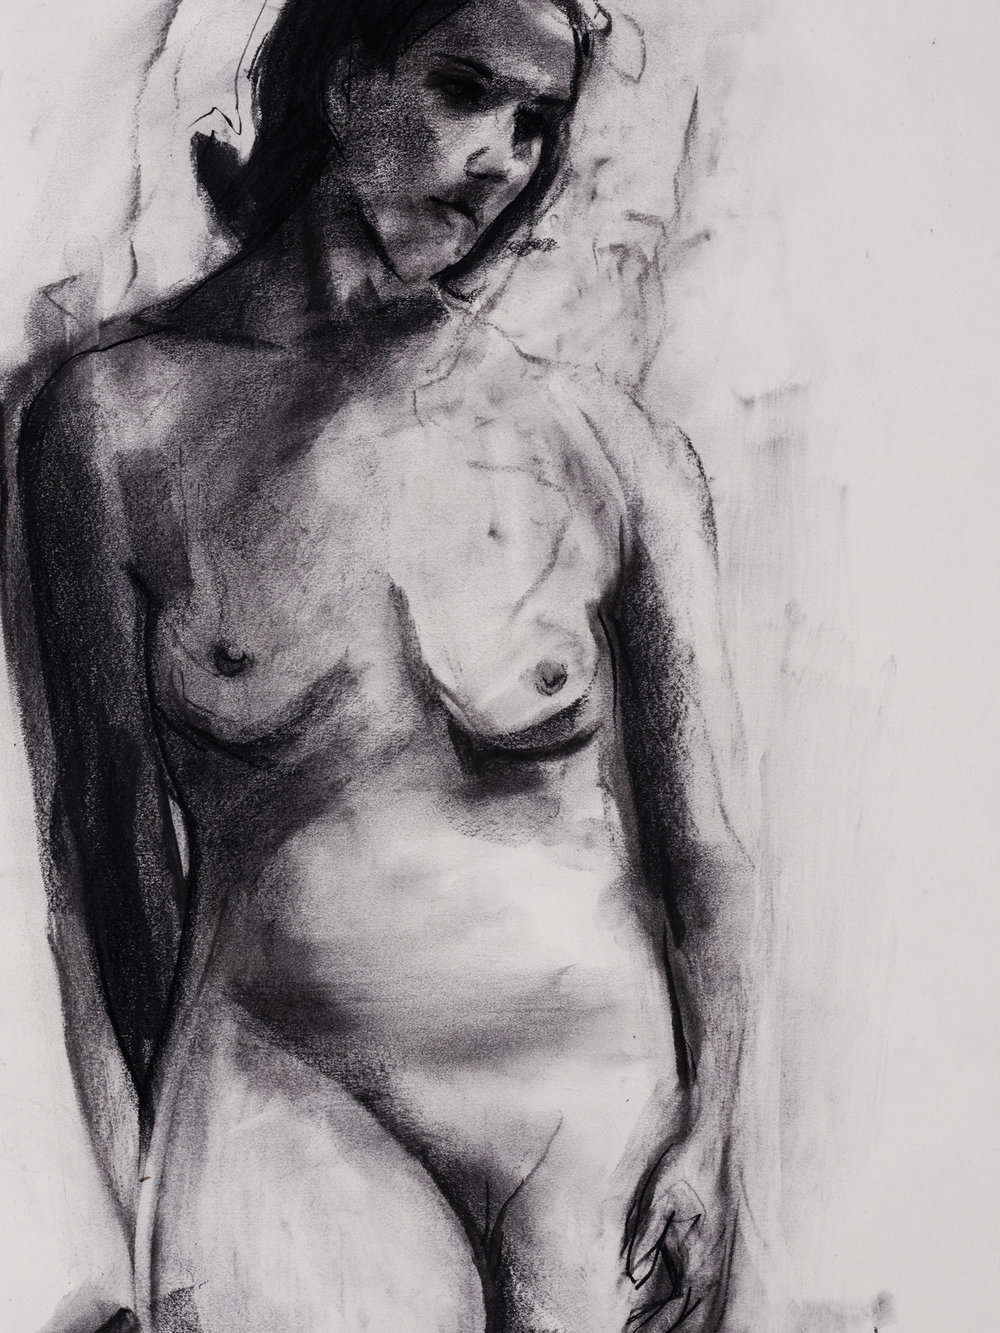 FigureDrawing-wHEYDT-1.jpg